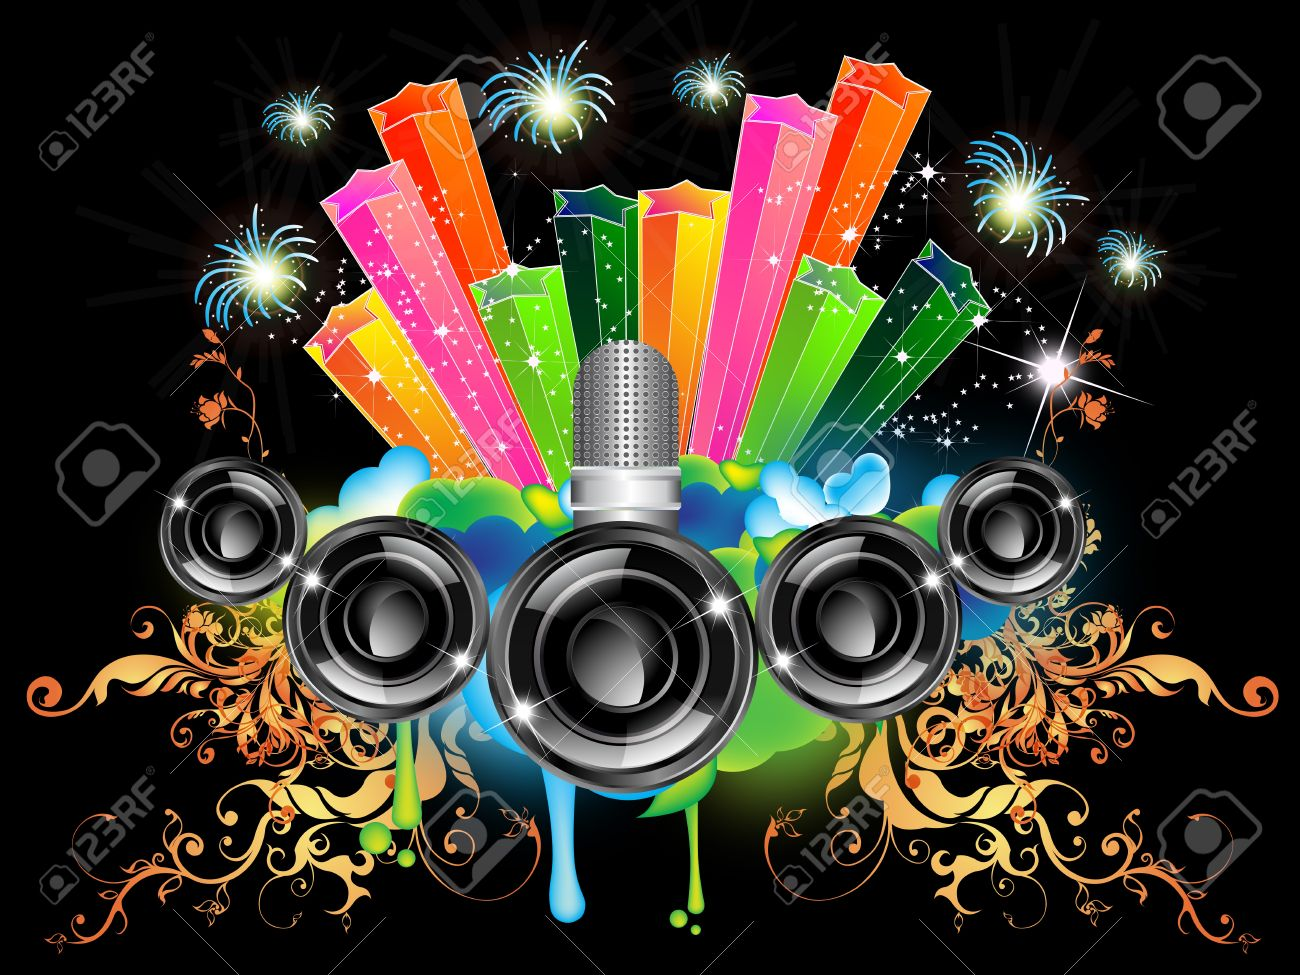 Fantasy Phone Wallpaper Woth Quote Download Dj Sound System Wallpaper Gallery